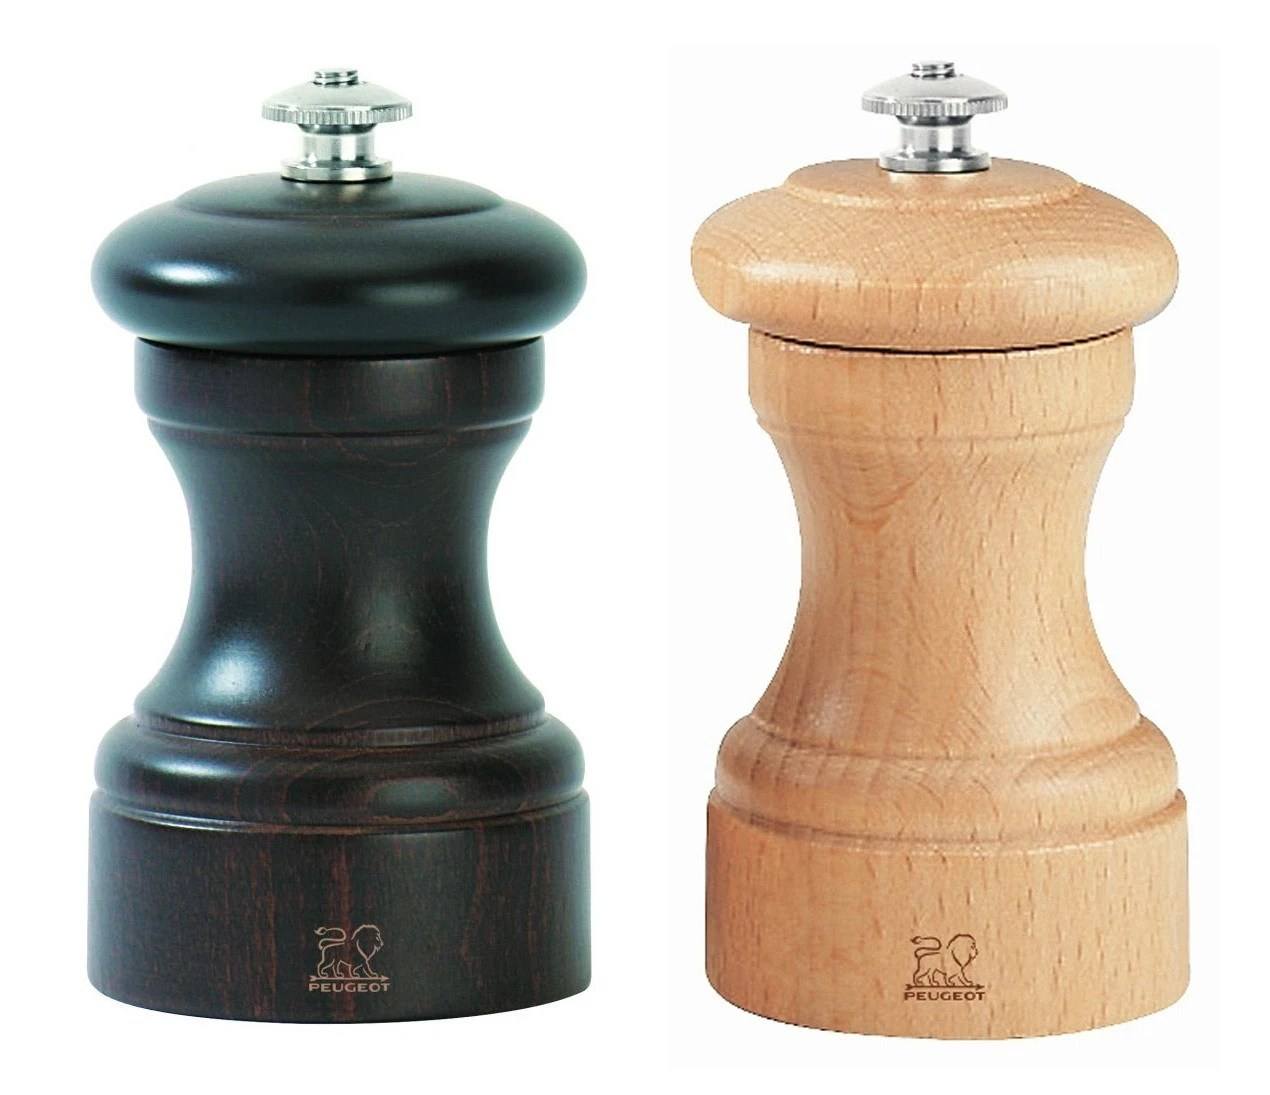 Fancy Pepper Grinder Peugeot Saveurs Bistro Duo Chocolate Natural Pepper Salt Mill